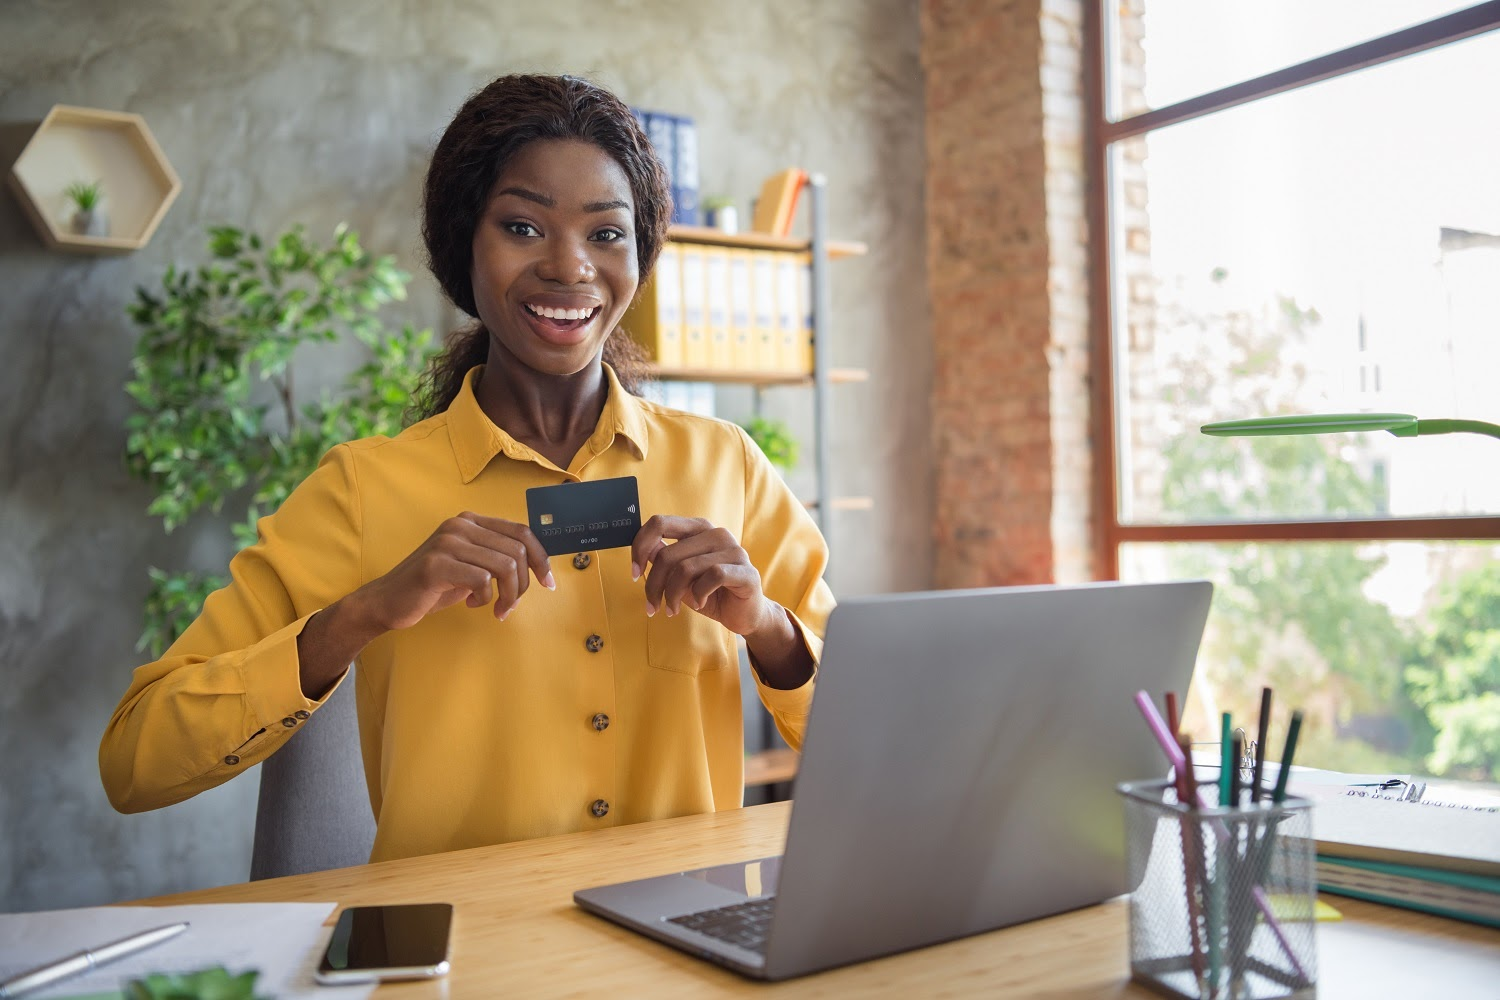 Smartest way to use a credit card: A smiling woman holds a credit card and sits at her desk